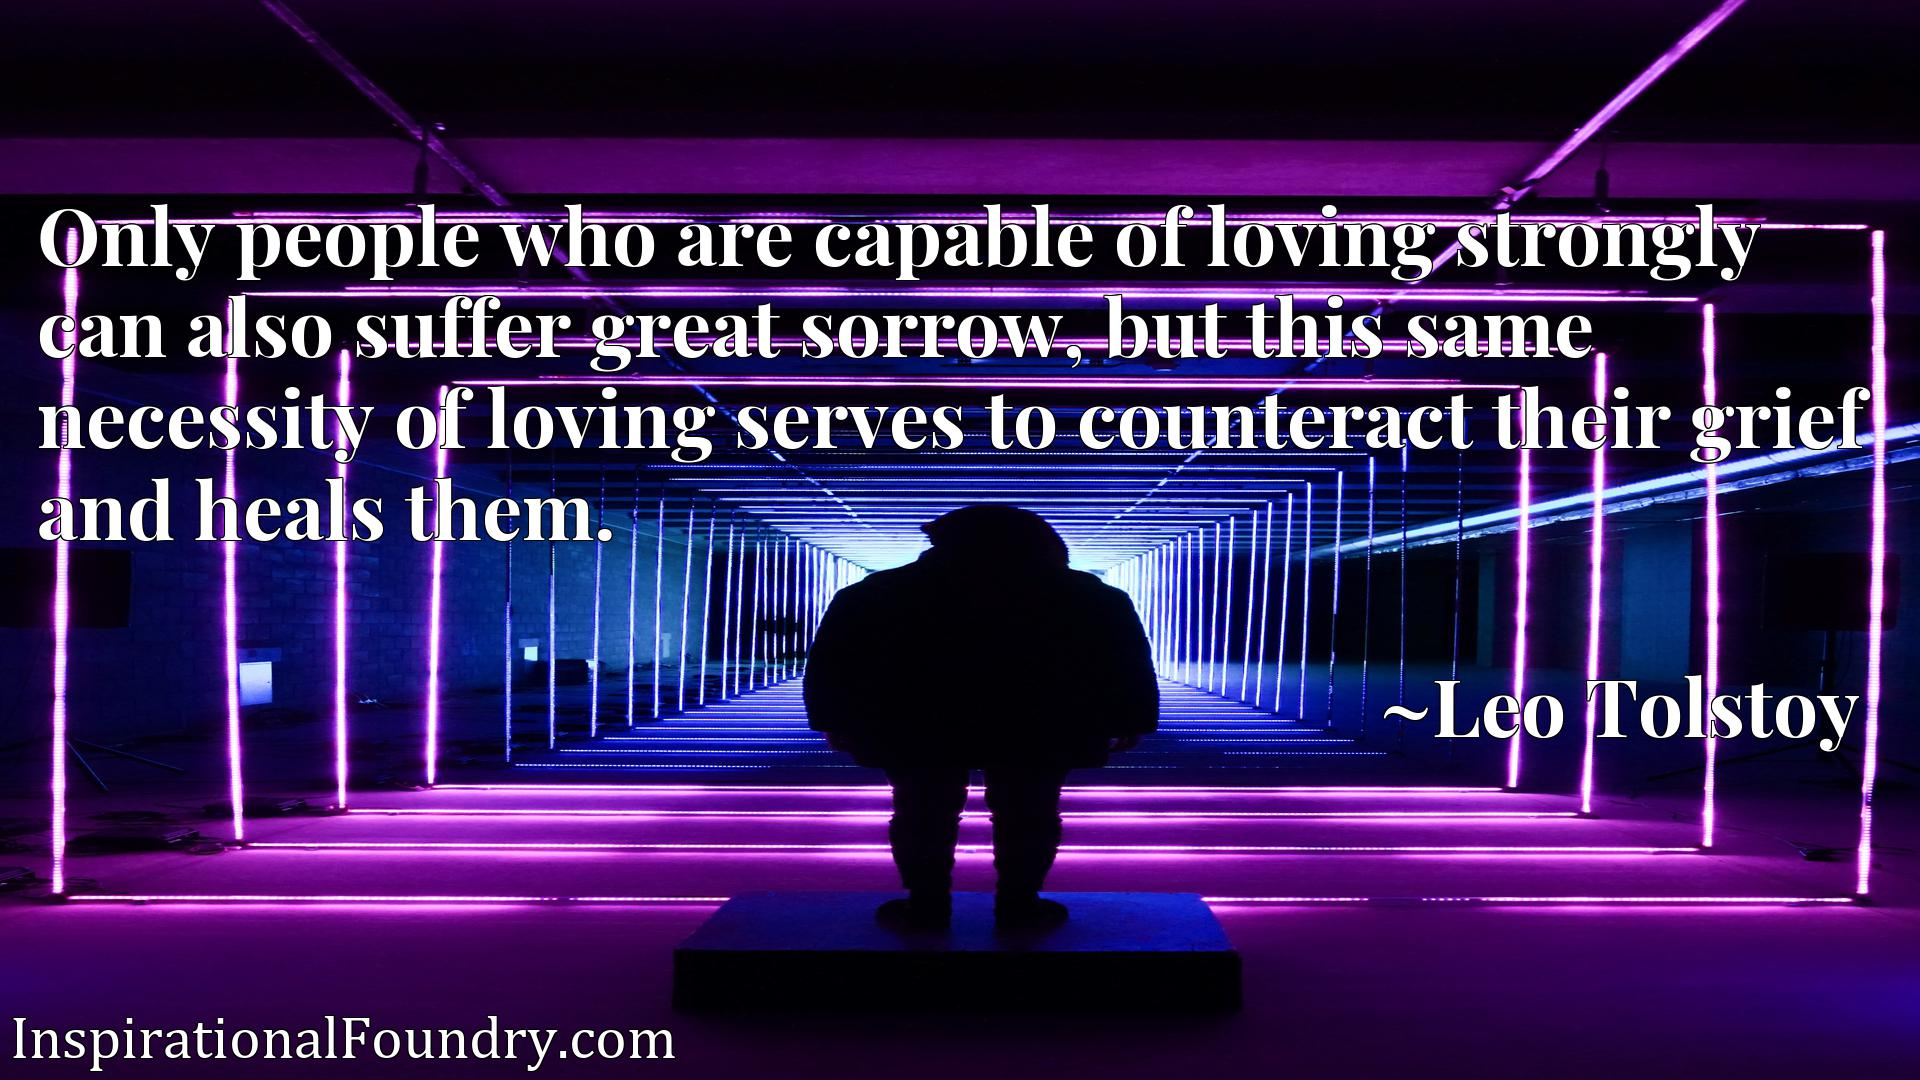 Only people who are capable of loving strongly can also suffer great sorrow, but this same necessity of loving serves to counteract their grief and heals them.